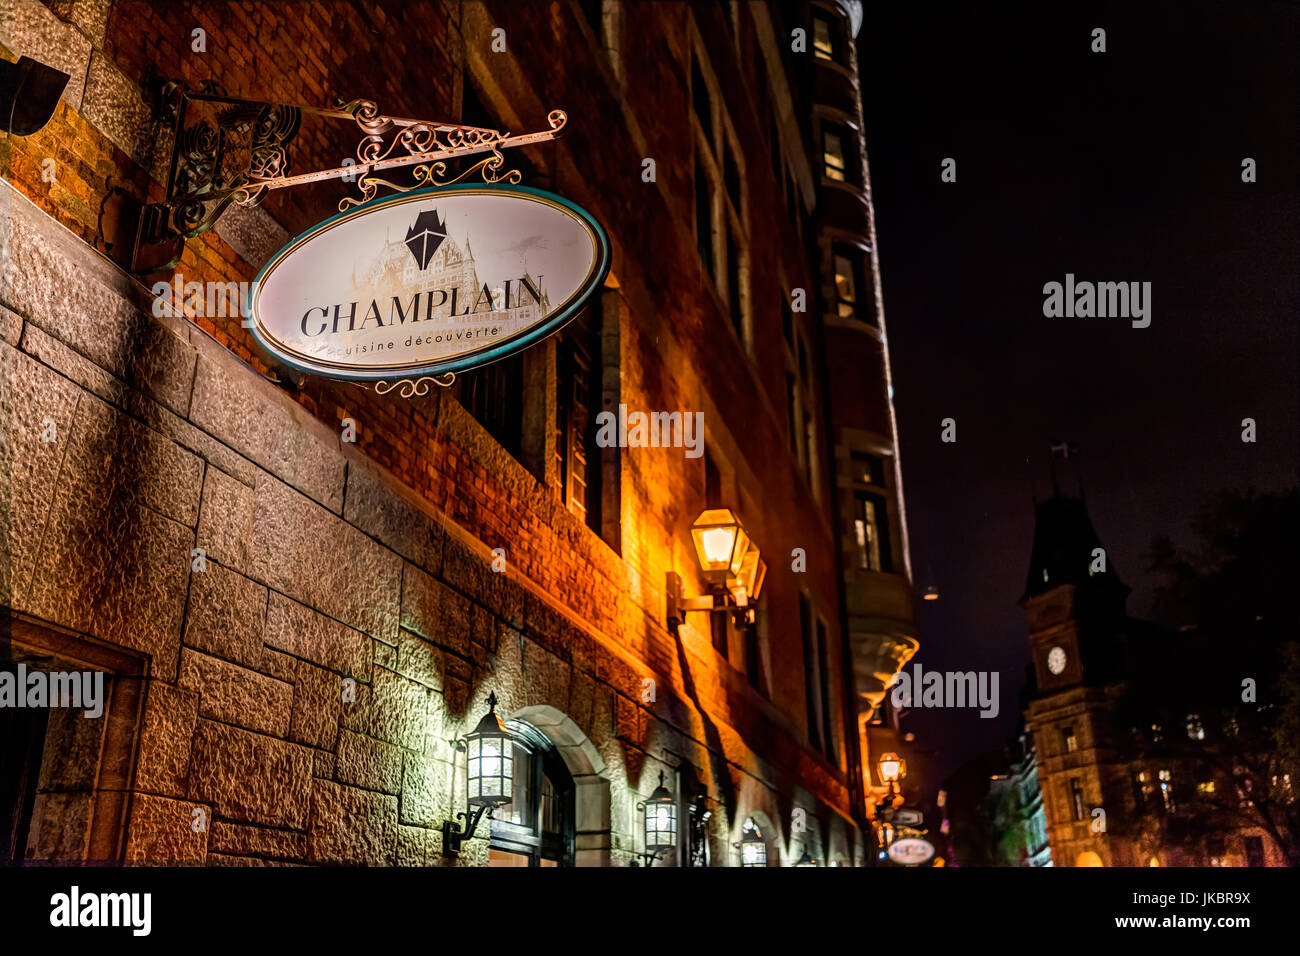 Quebec City, Canada - May 31, 2017: Closeup of Champlain restaurant sign on brick building on lower old town street - Stock Image